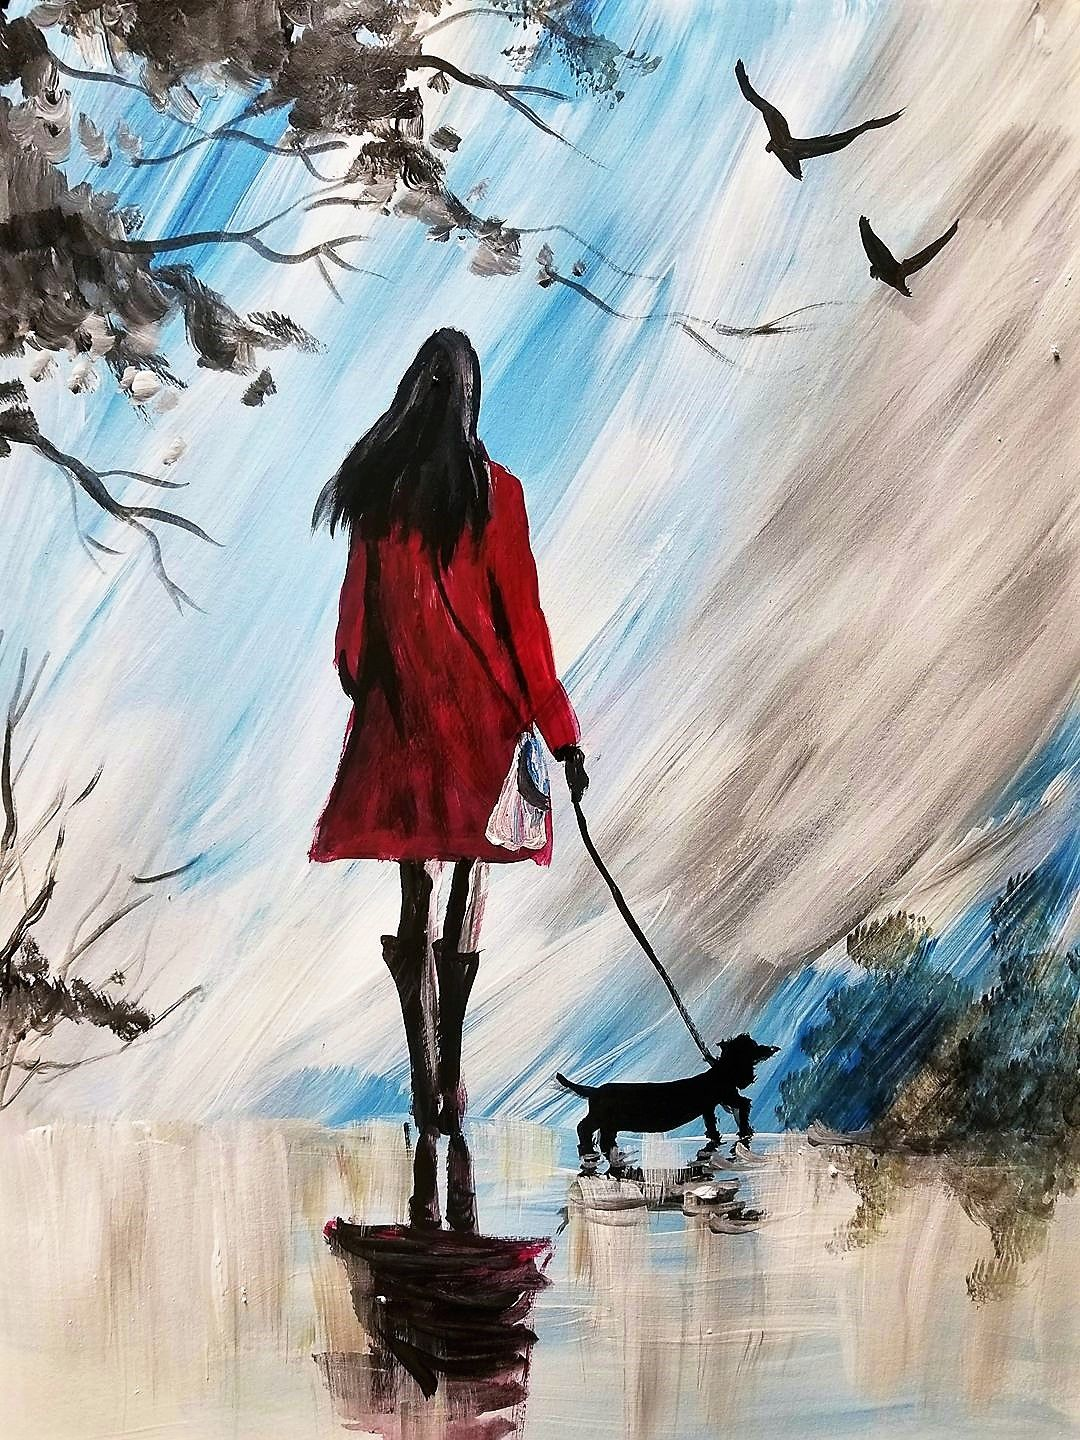 Fall 2017 Lookbook You Ll Never Walk Alone Paint Nite Painting Painting Night Painting Art Painting